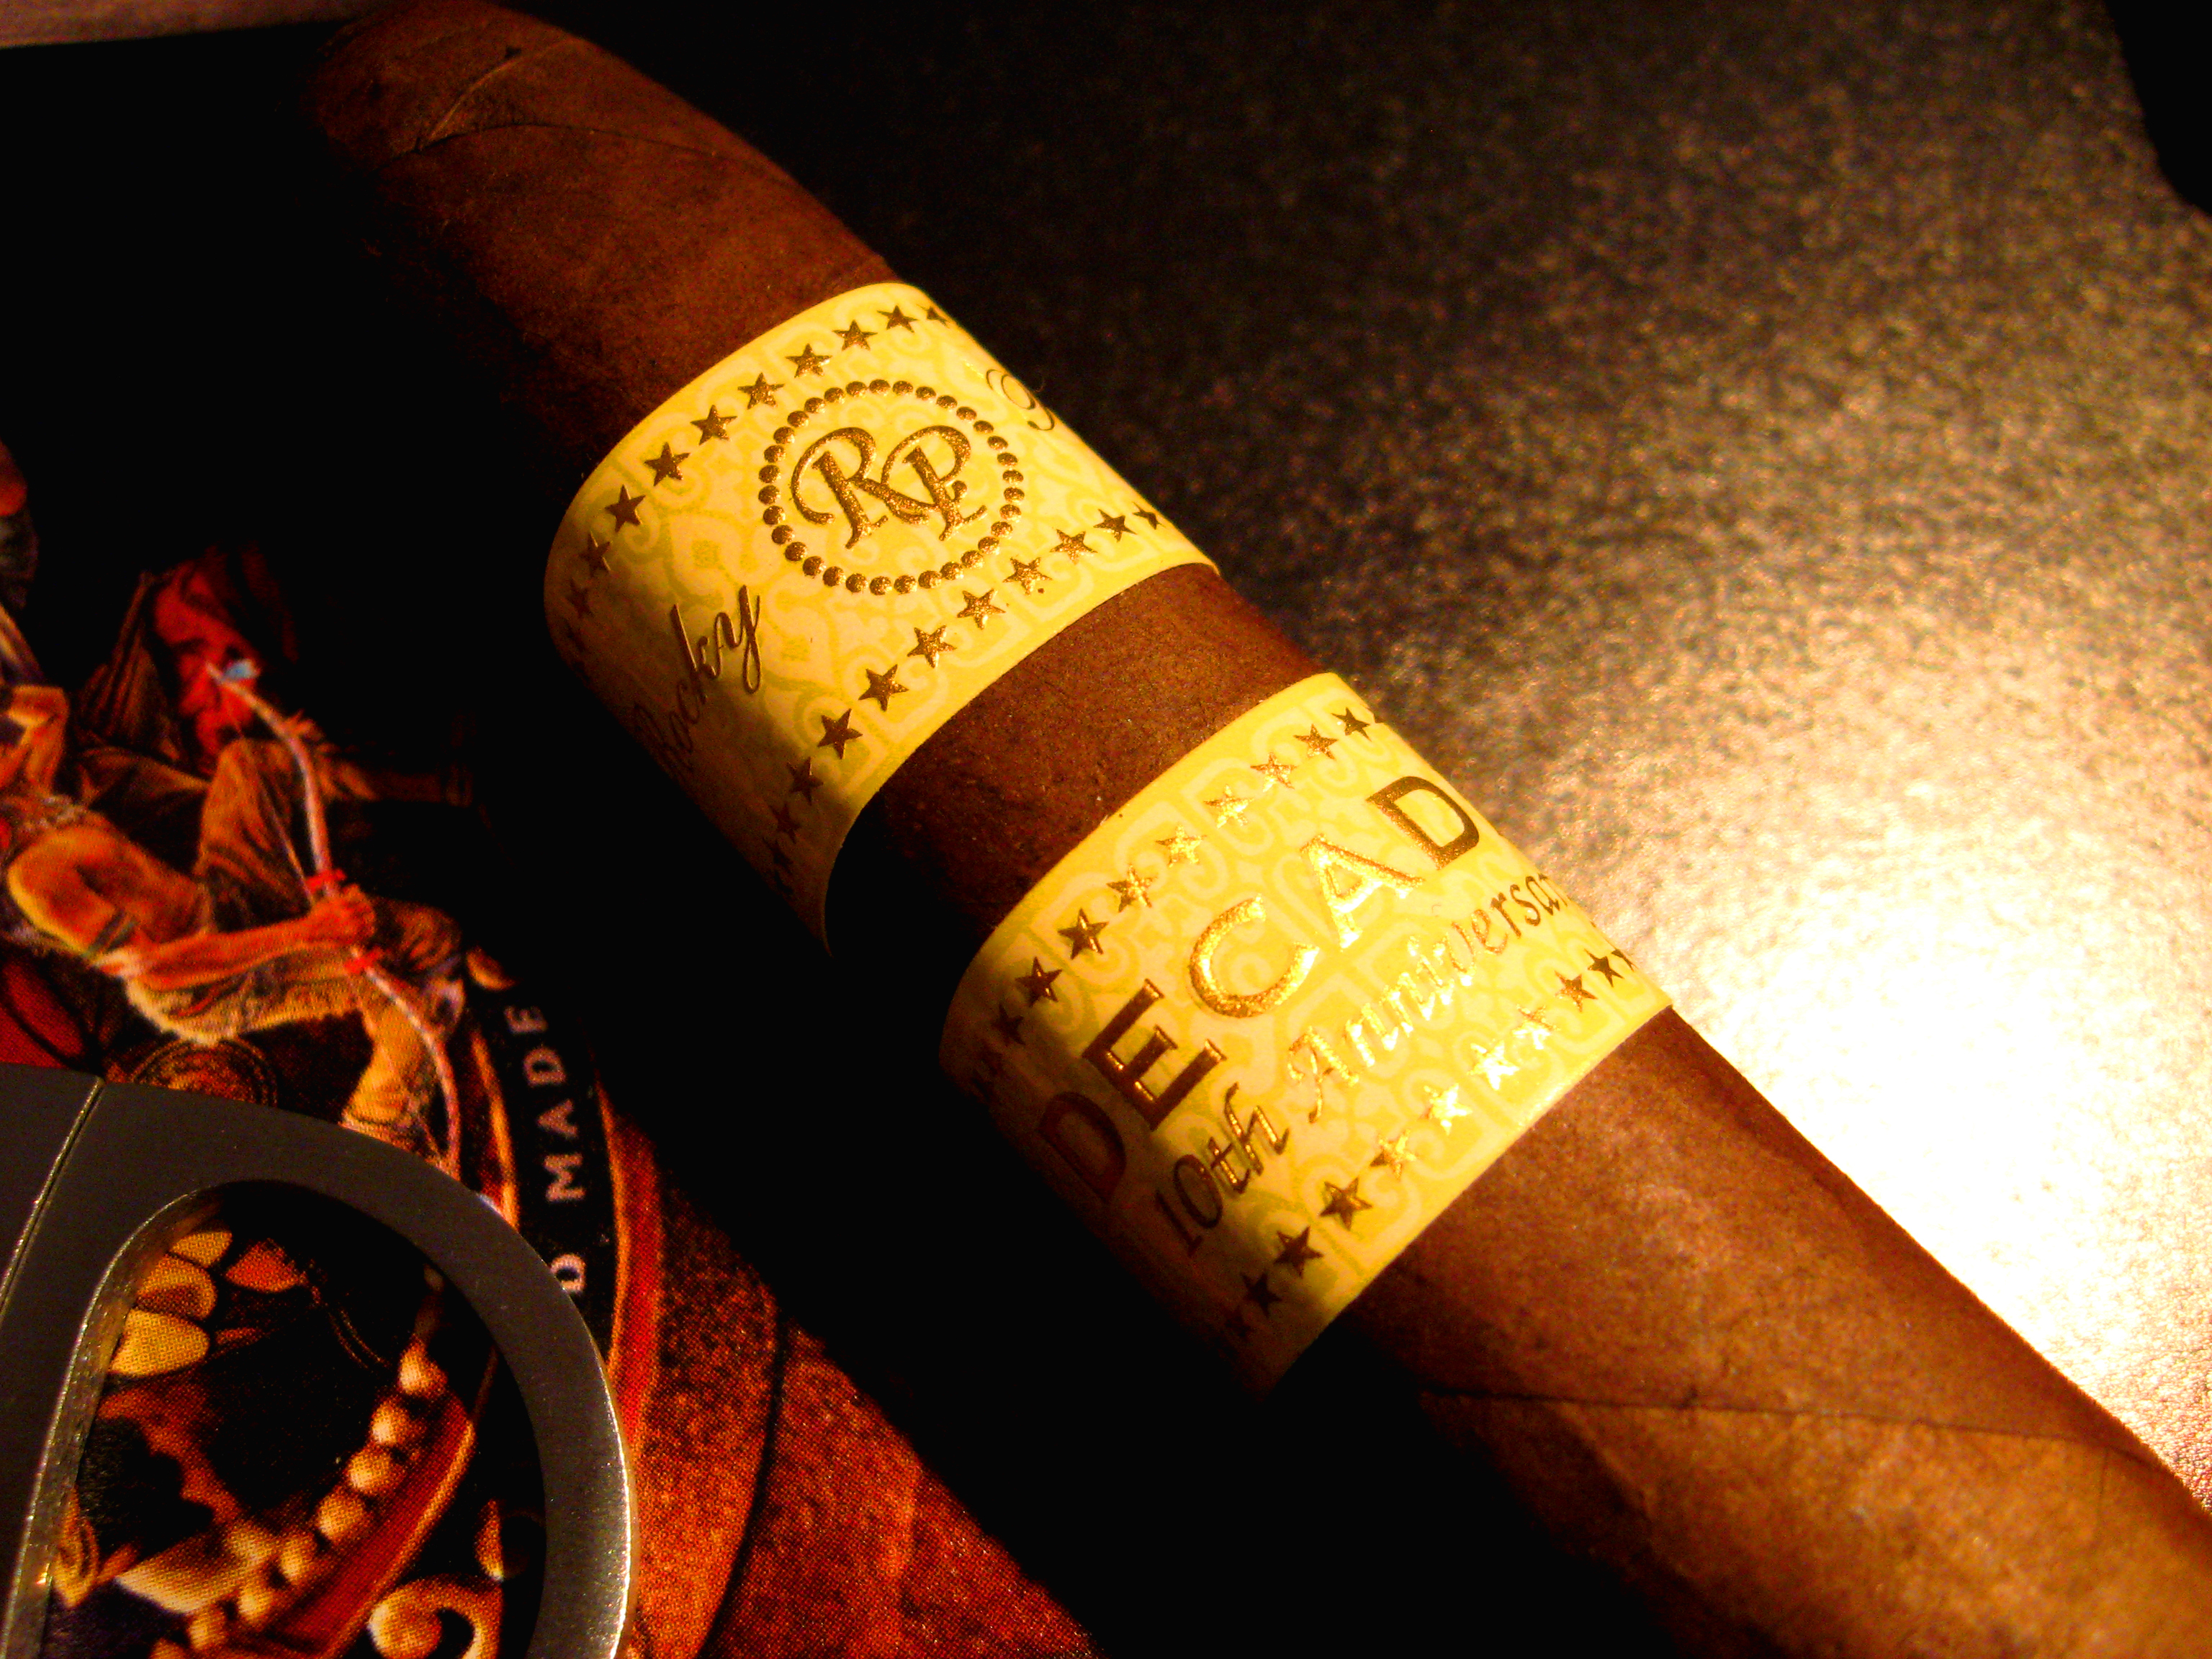 cigars Rocky patel decade HD Wallpaper